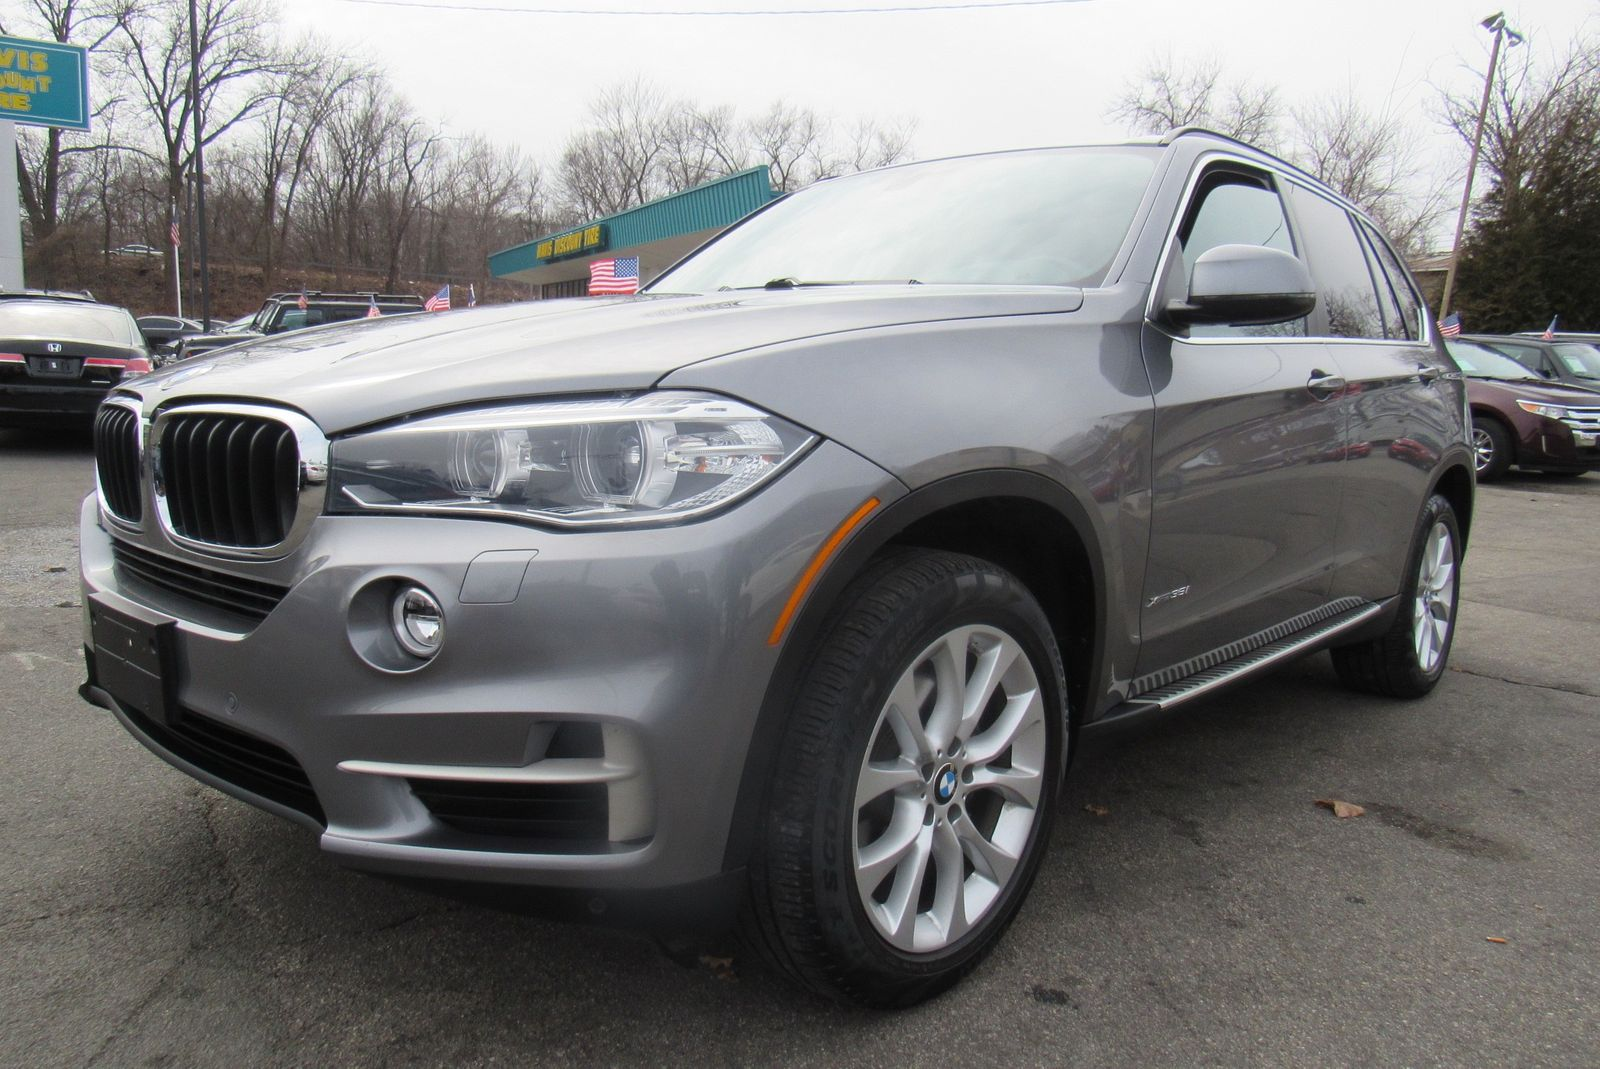 2016 BMW X5 . Lot 999185722522 Vin 5UXKR0C53G0S89812